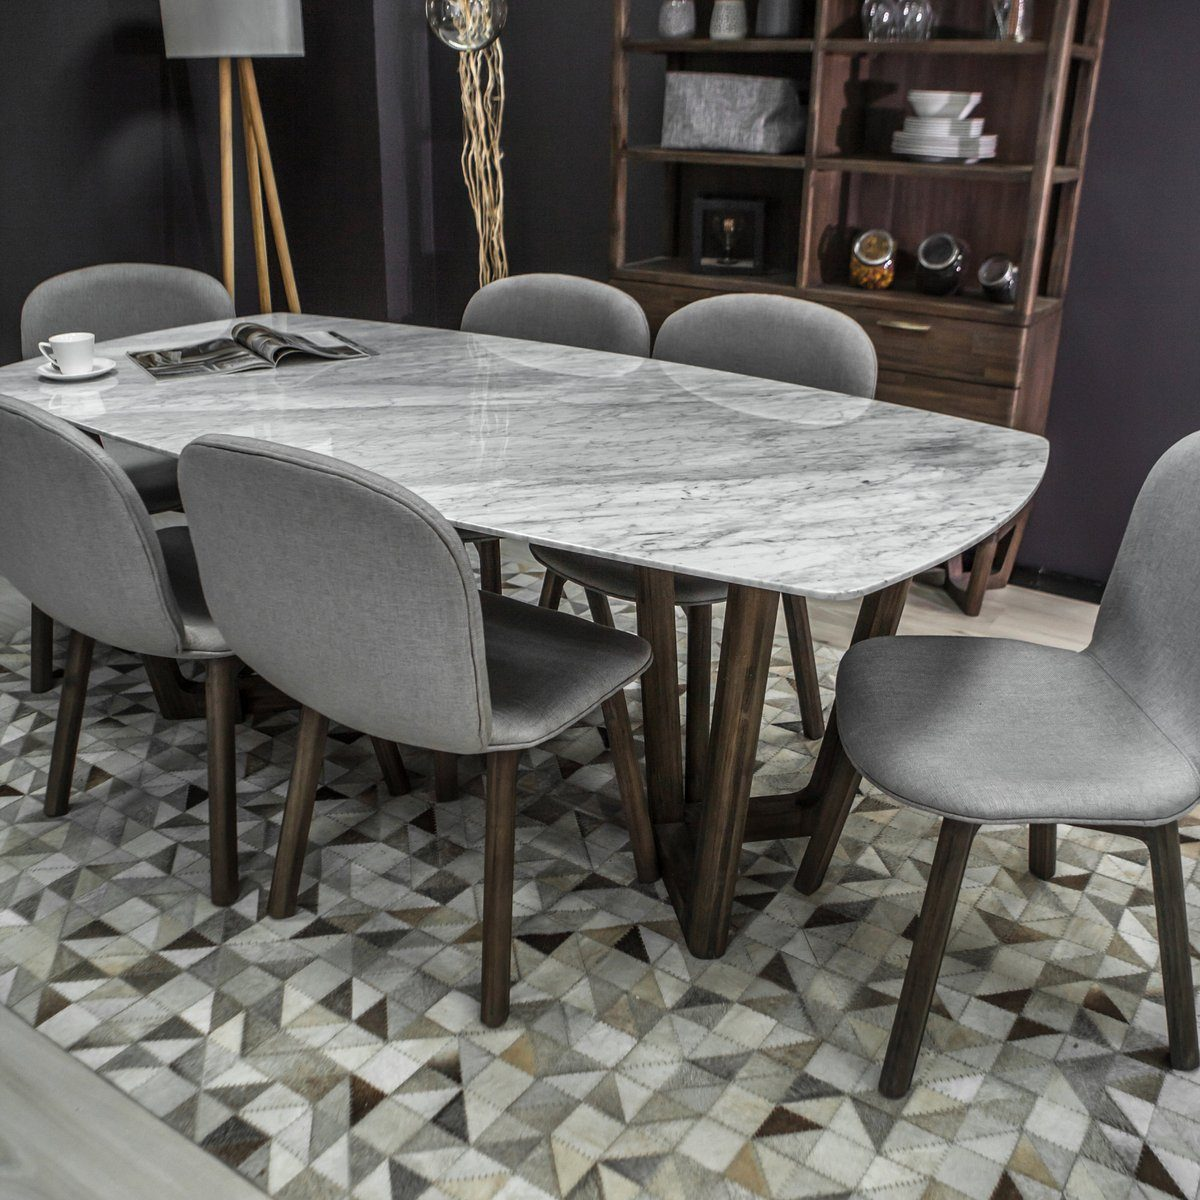 AURA DINING TABLE 71"